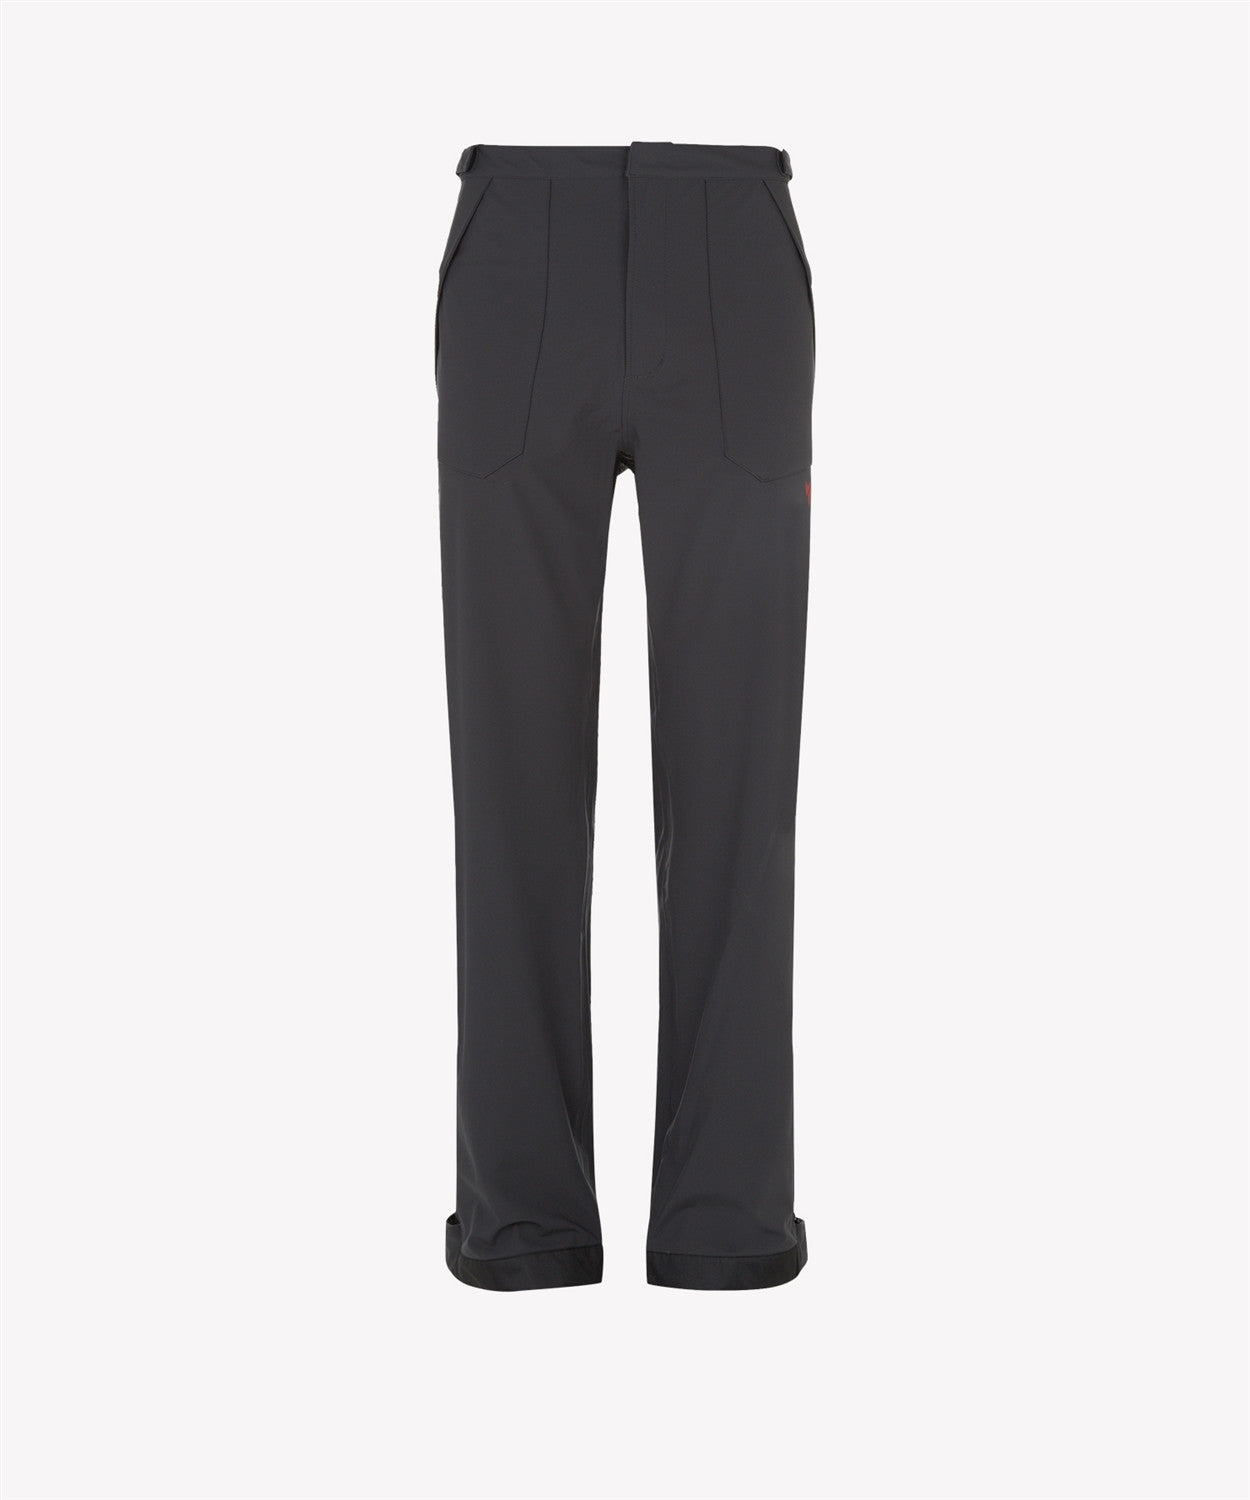 PIRATE BLACK WATERPROOF GOLF OVER TROUSER